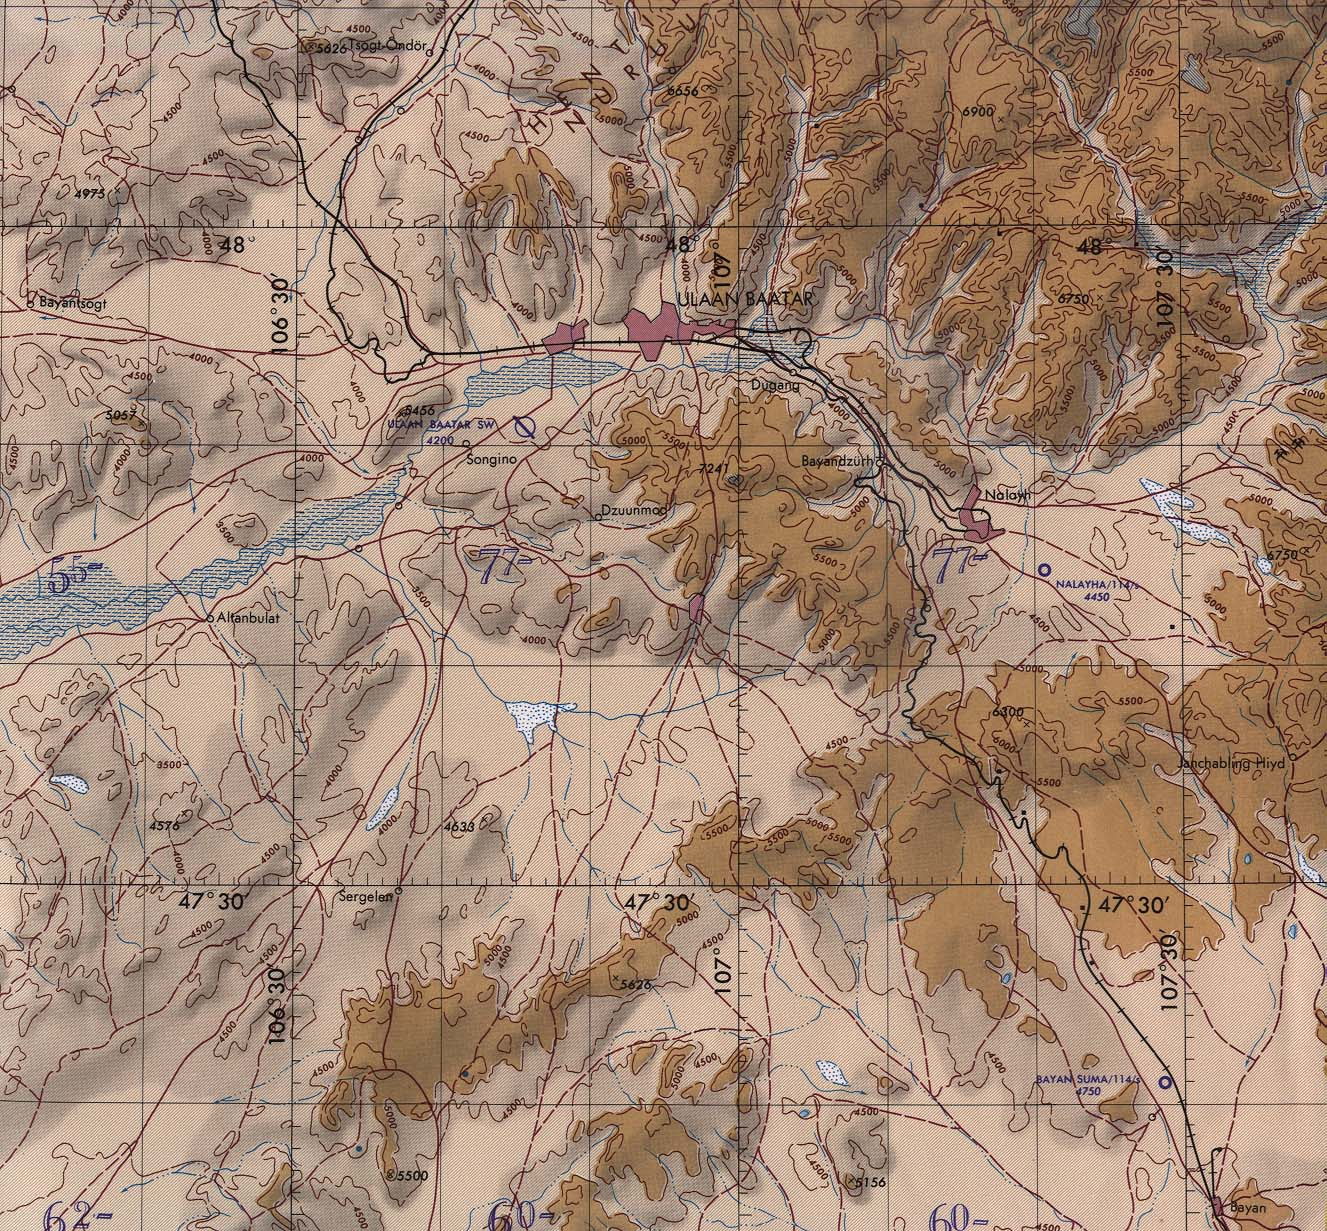 Download Free Mongolia Maps - Google topographic maps online